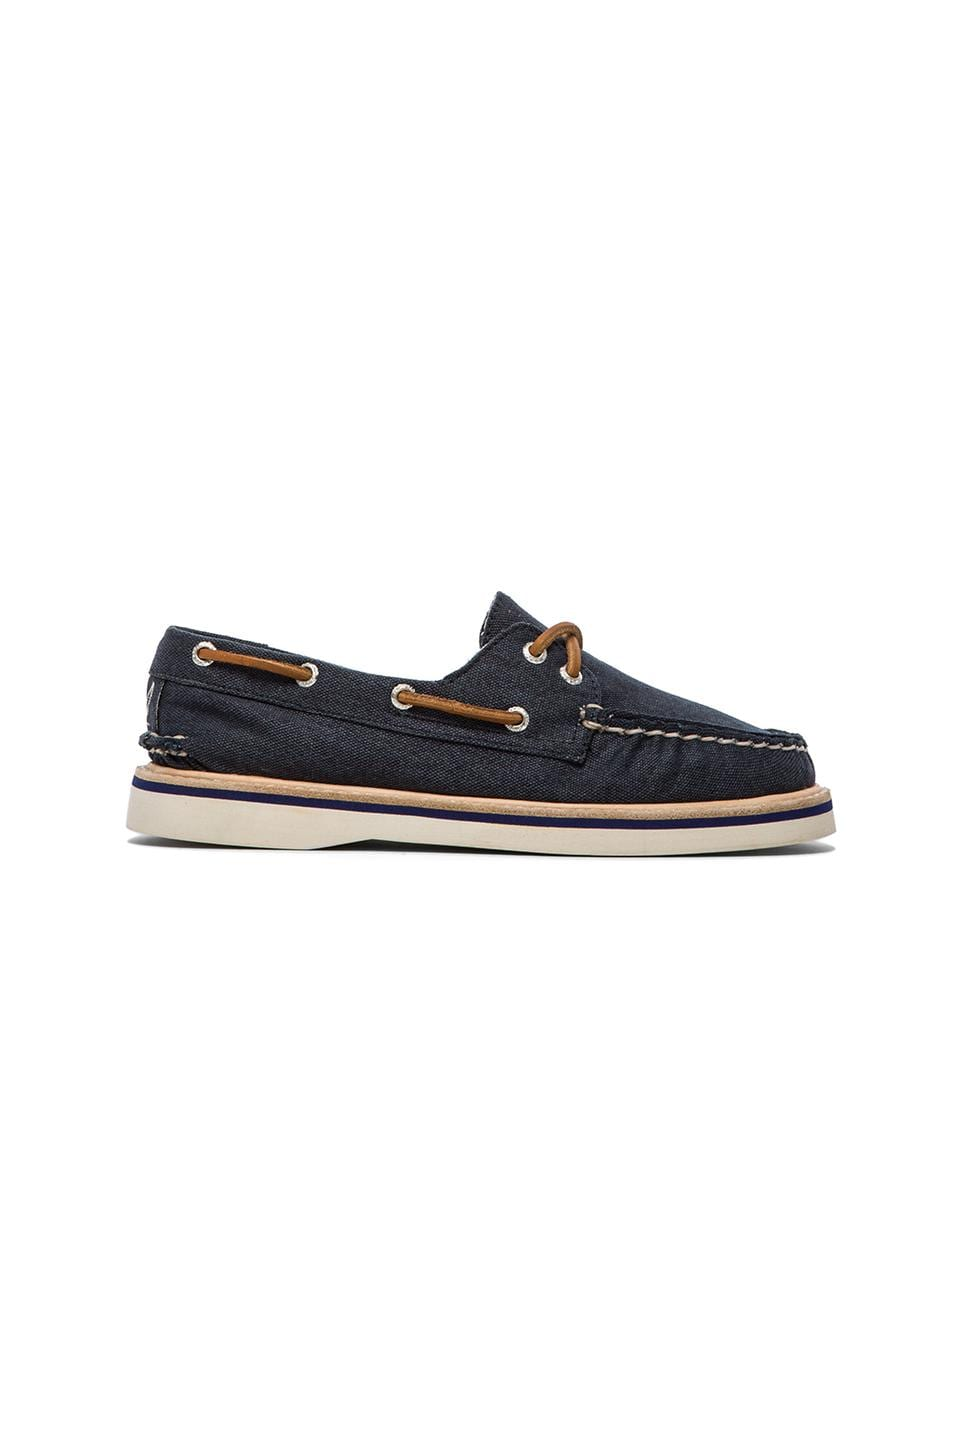 Sperry Top-Sider American Original Grayson in Navy Canvas